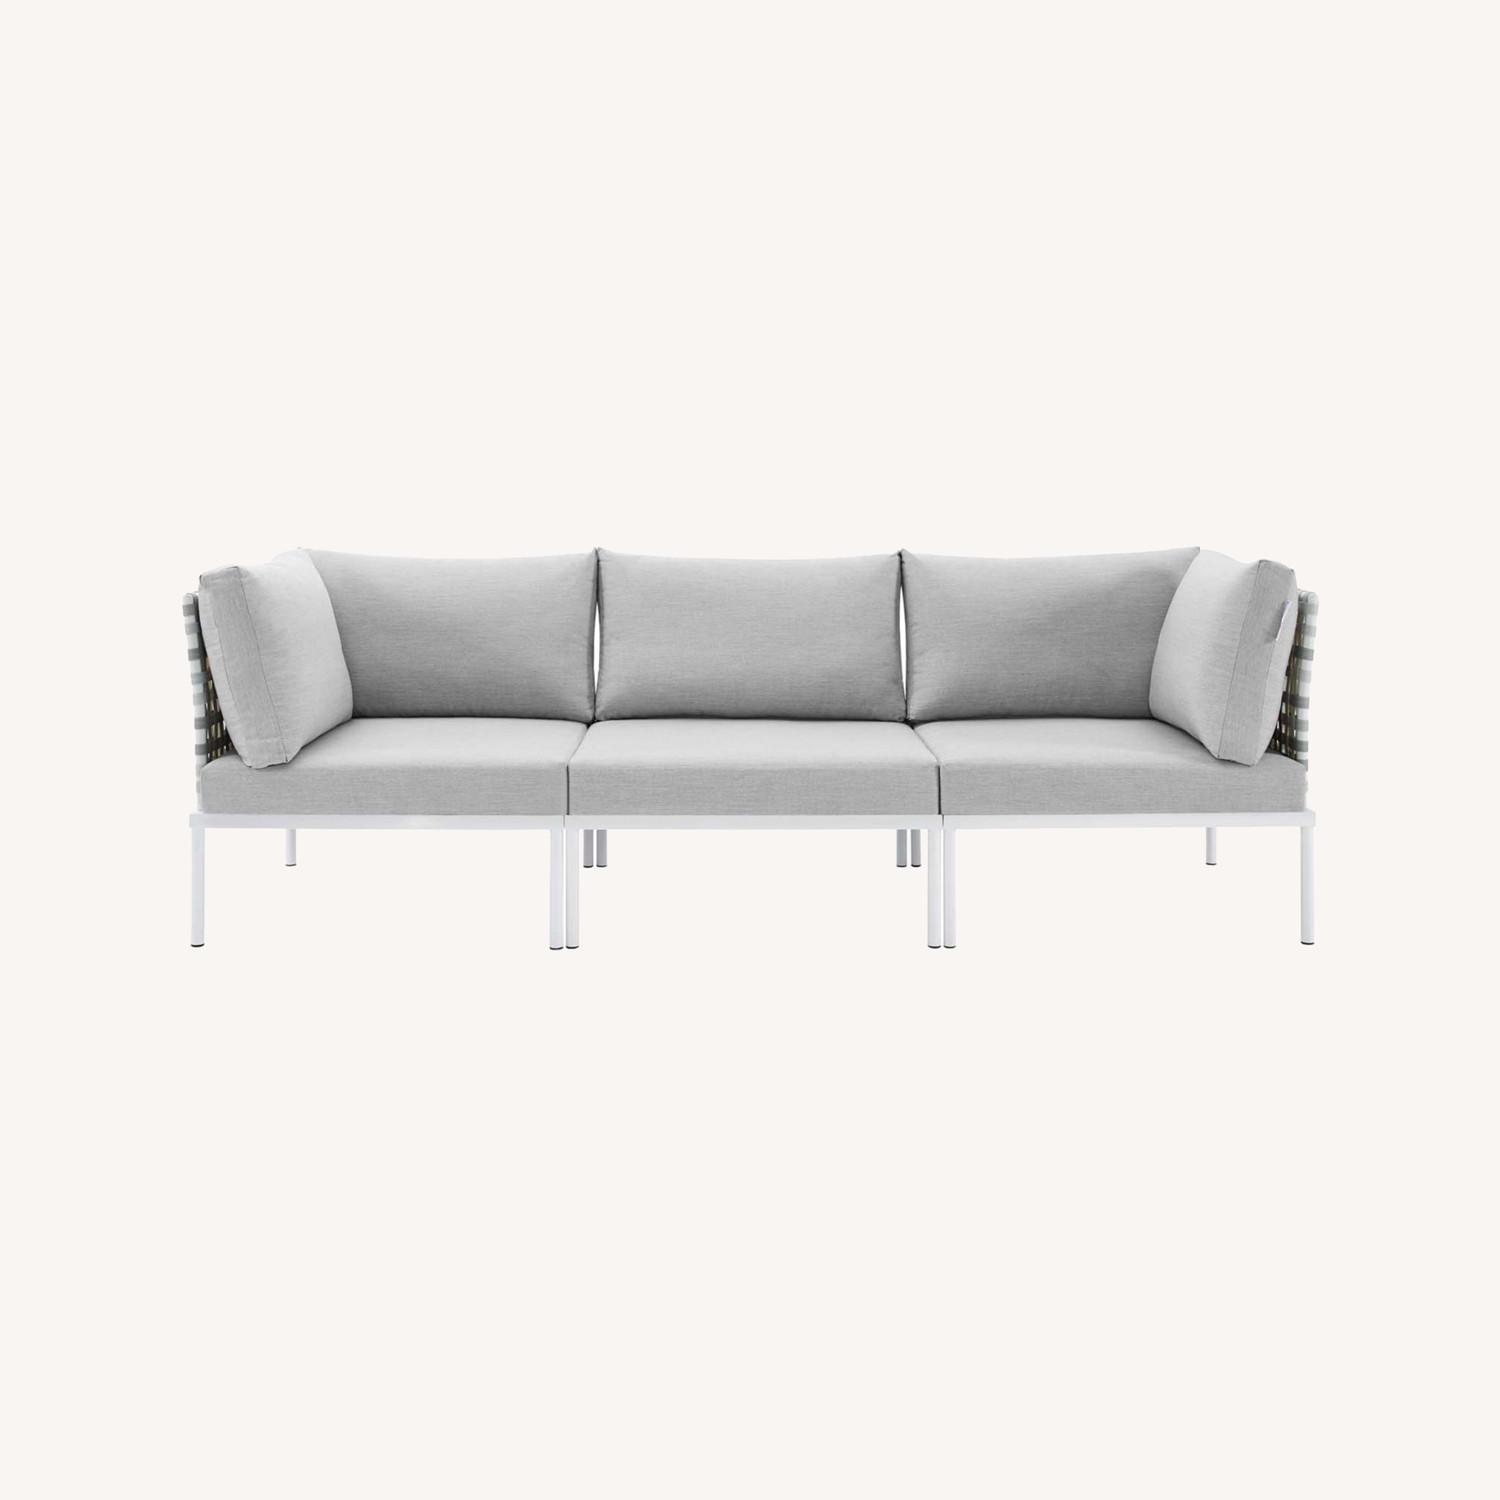 Outdoor Patio Sofa In Taupe Gray Cushion Fabric - image-8